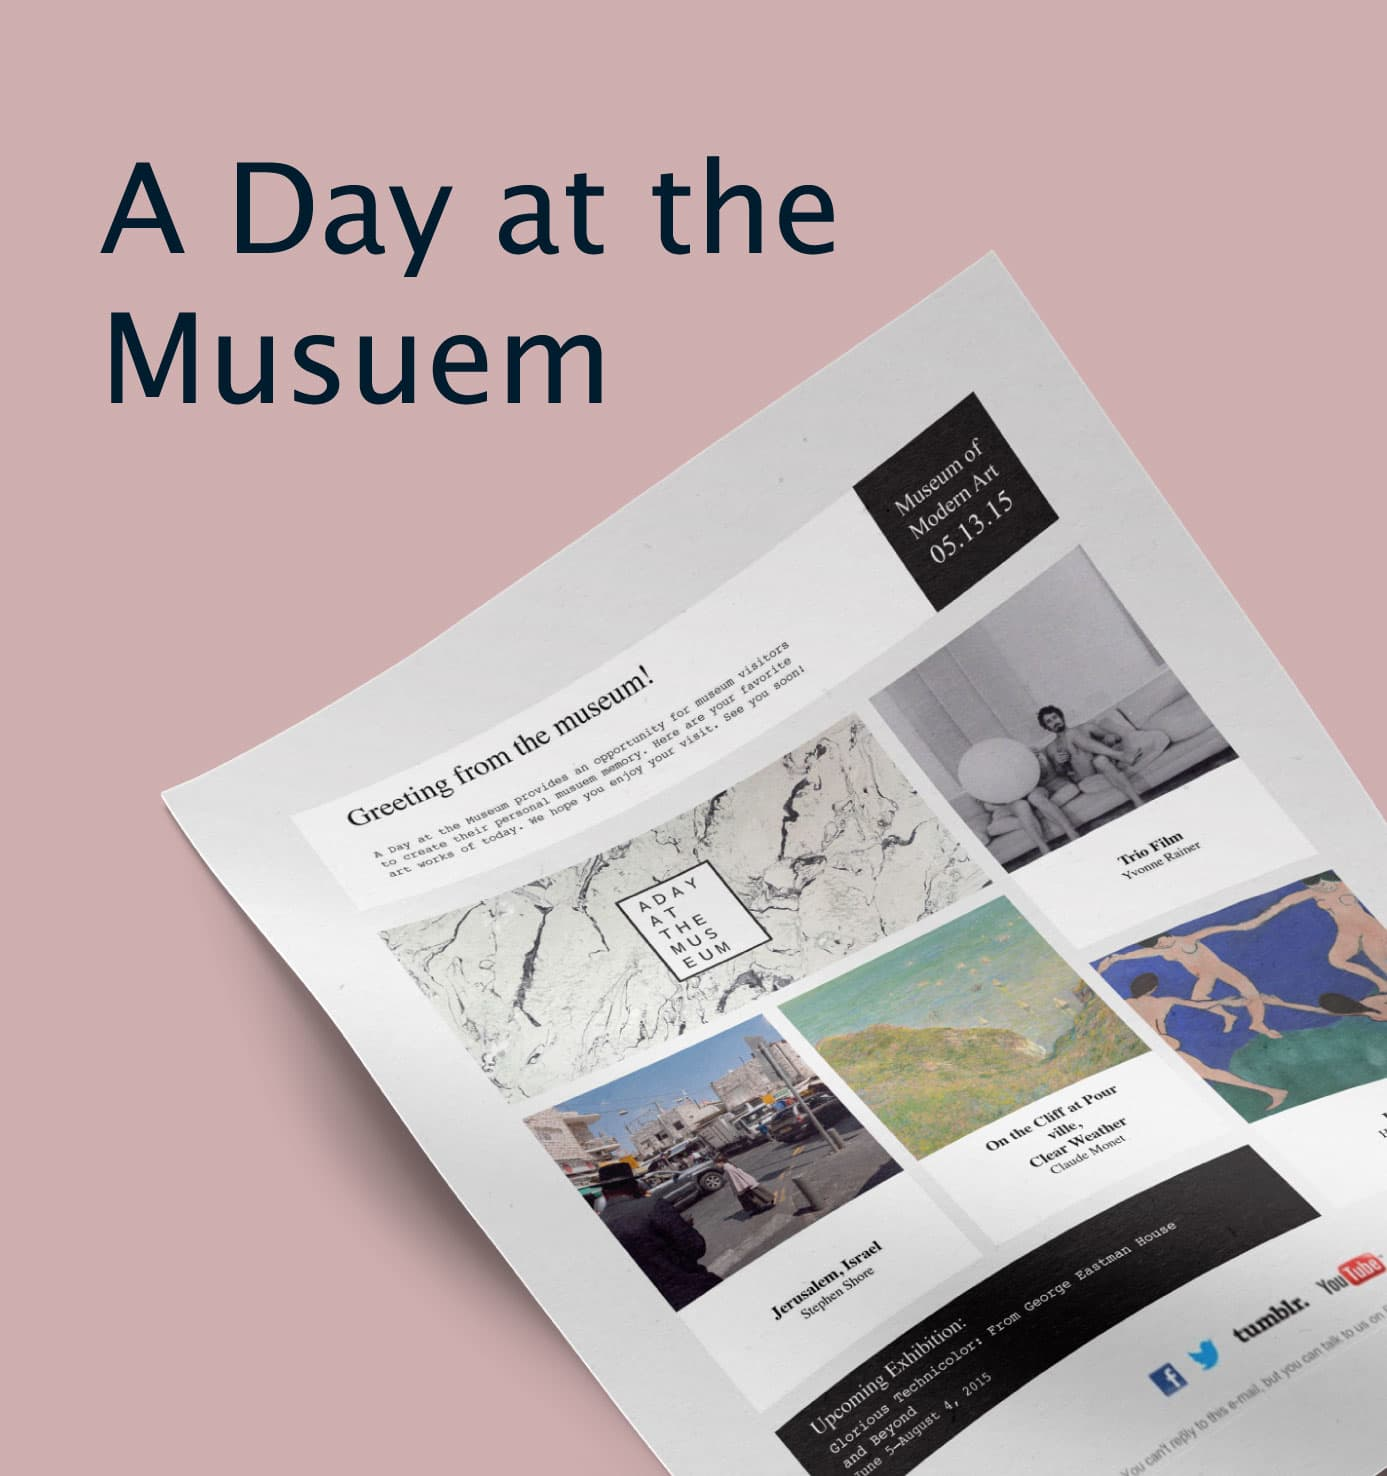 A day at the museum